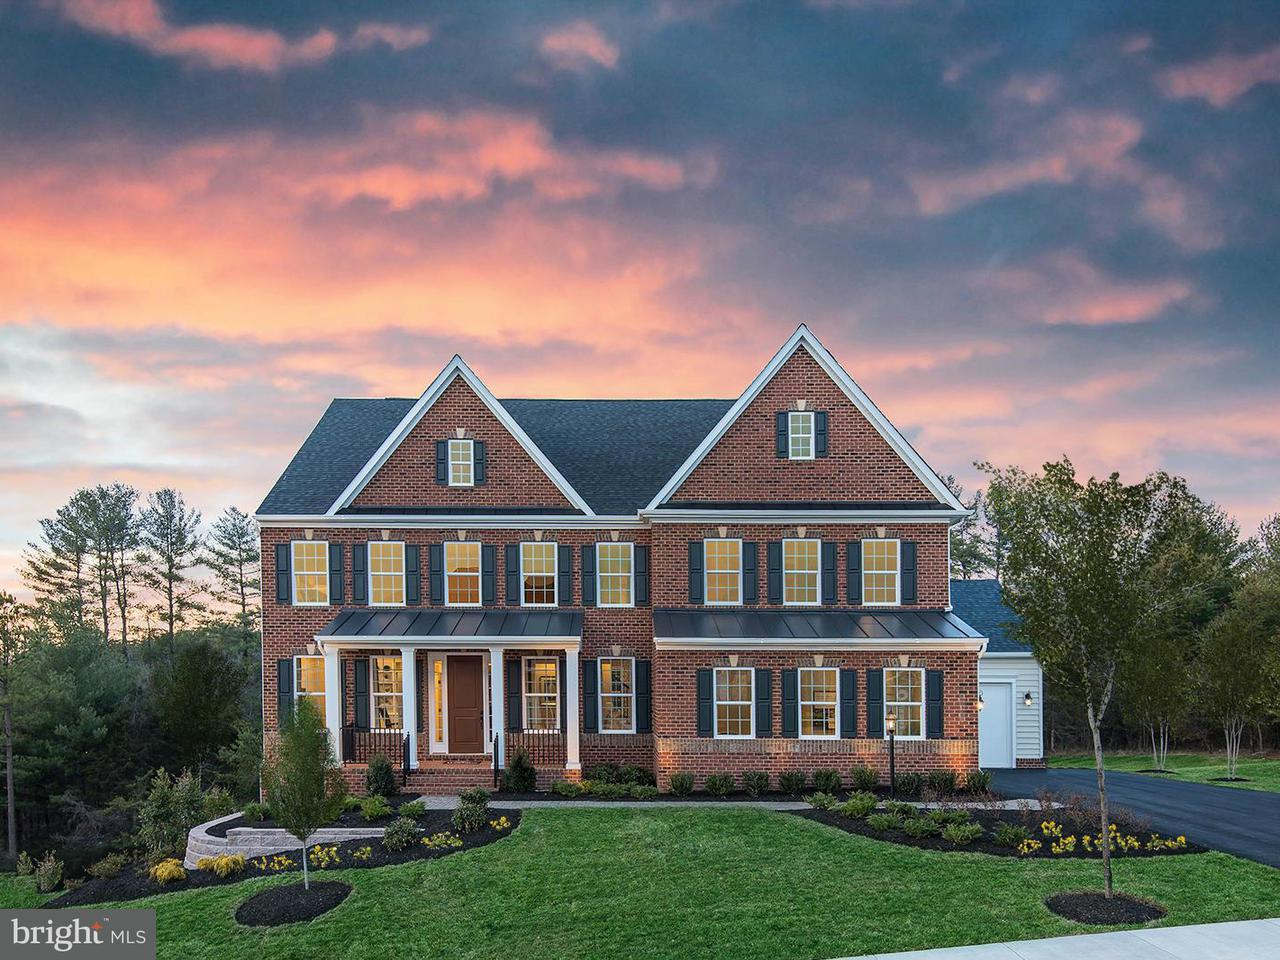 Single Family Home for Sale at 20792 Peach Tree Road 20792 Peach Tree Road Dickerson, Maryland 20842 United States